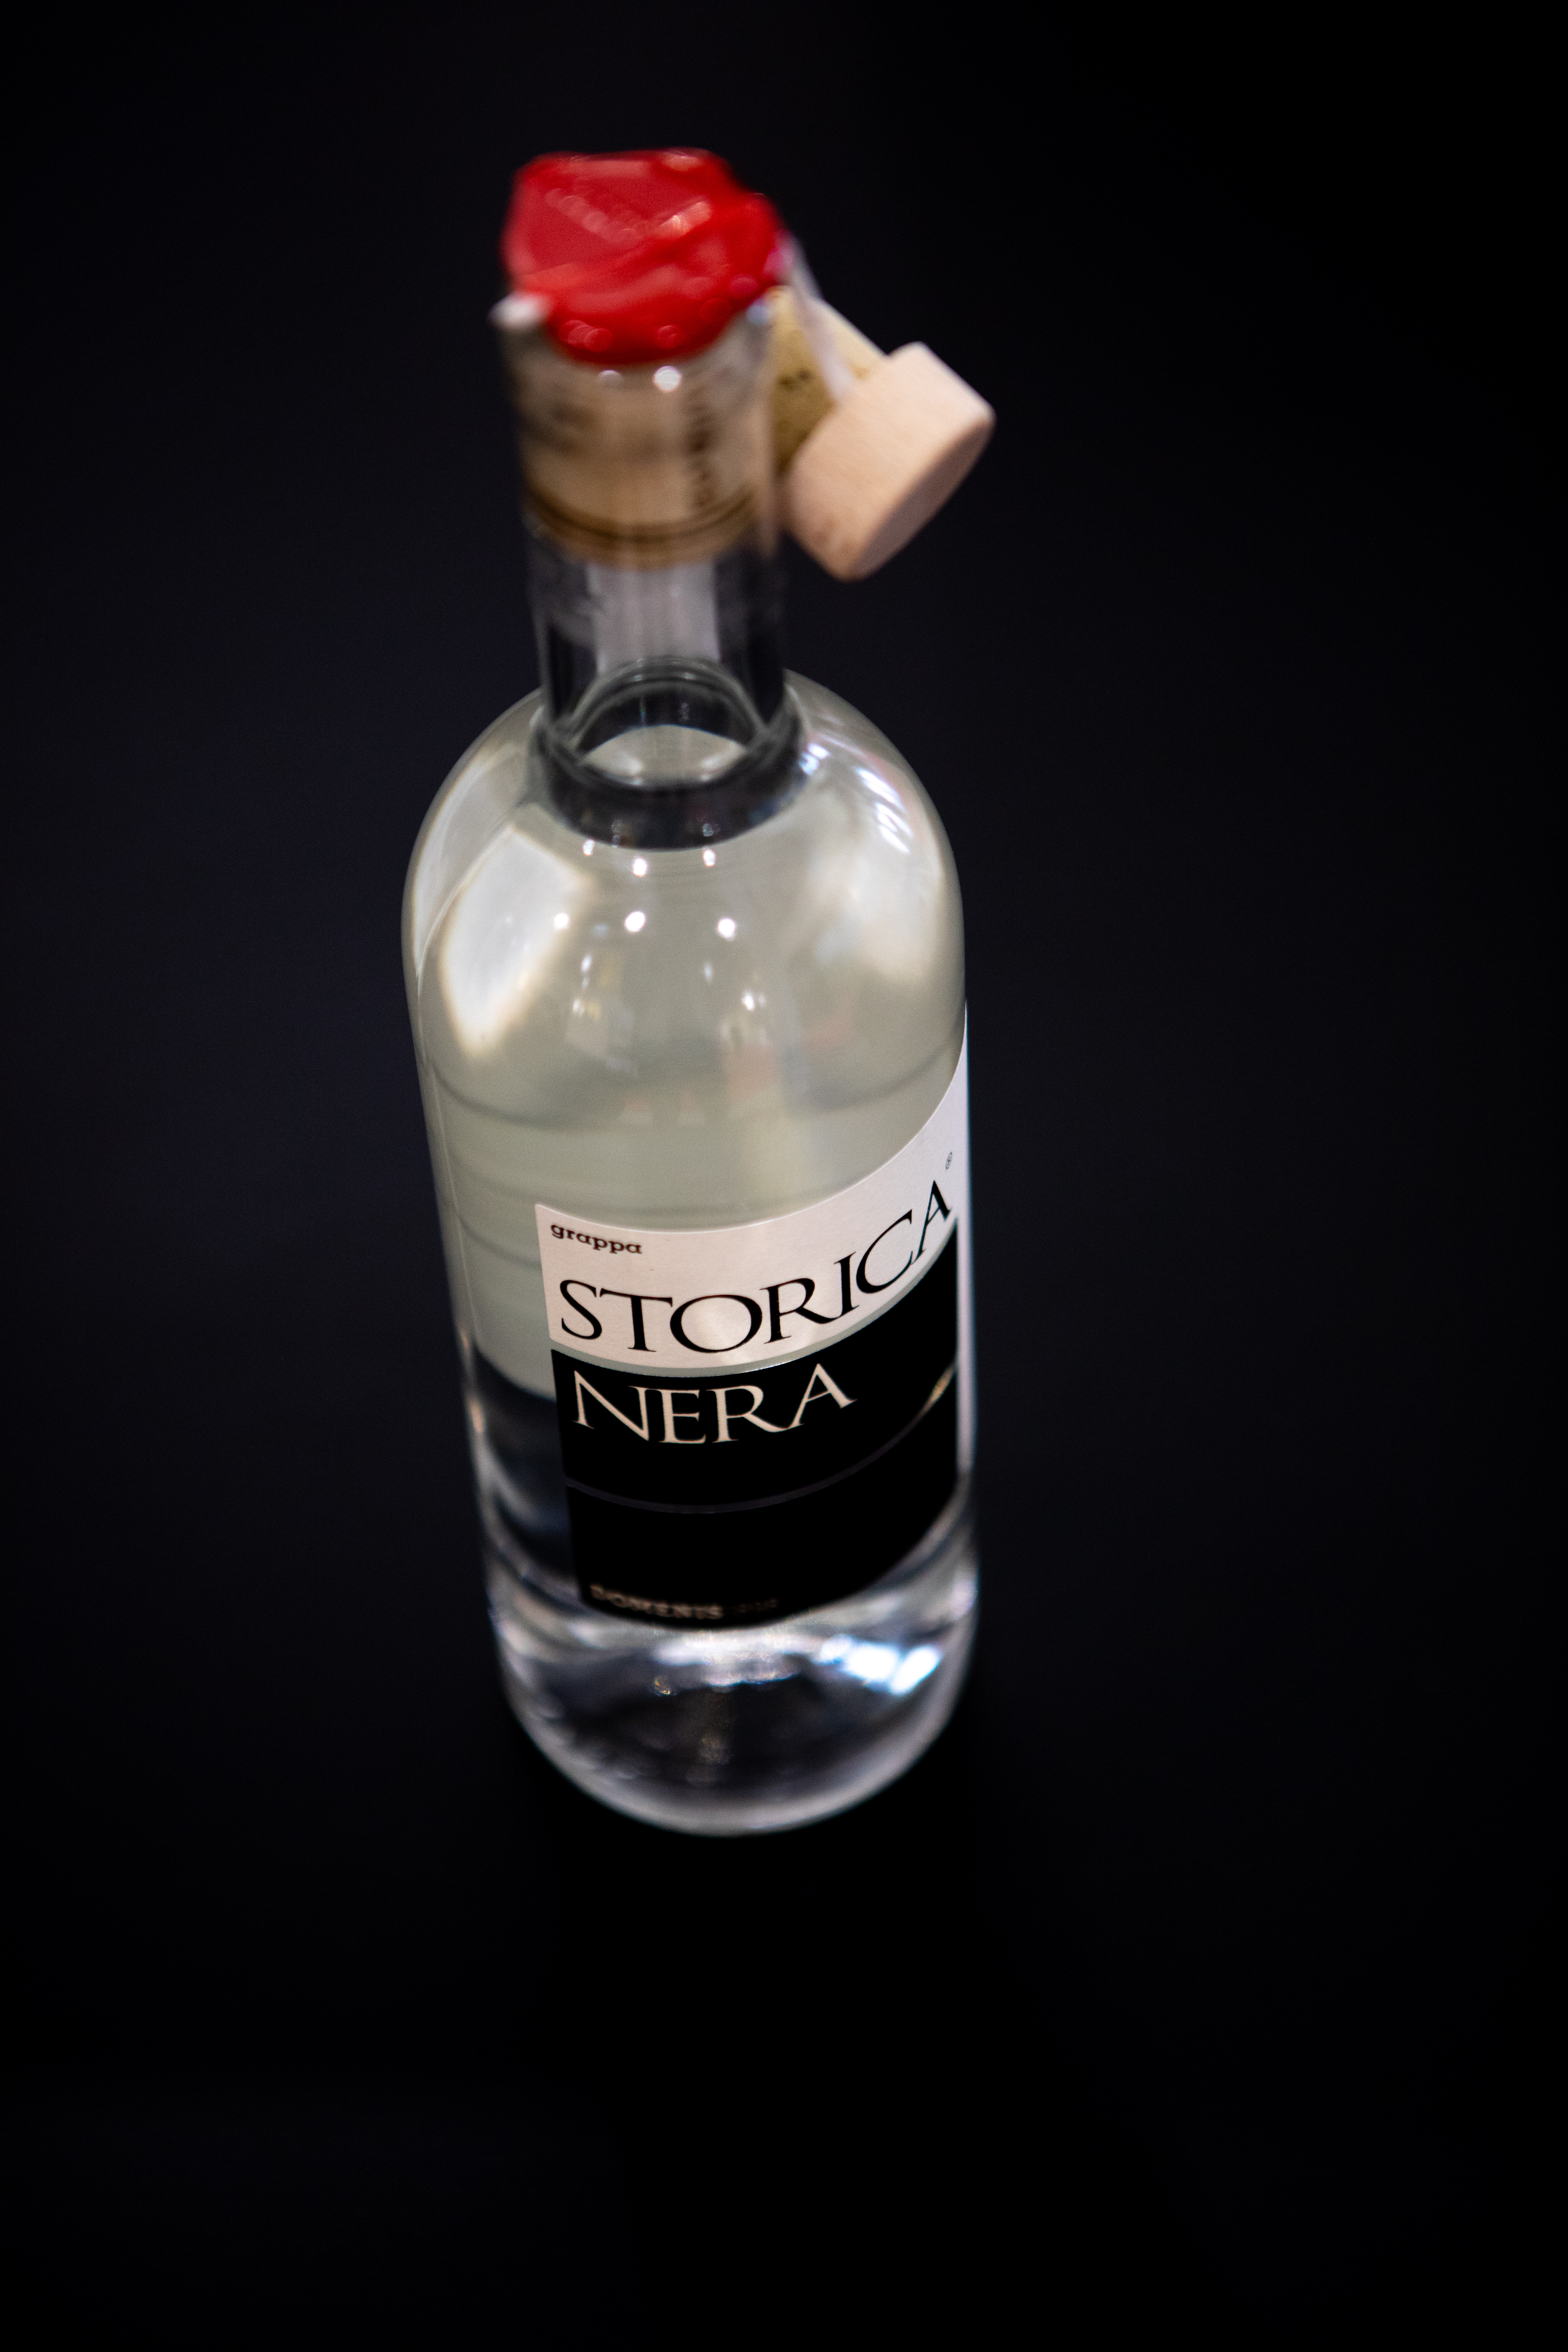 The silver linings of Grappa if consumed with moderation